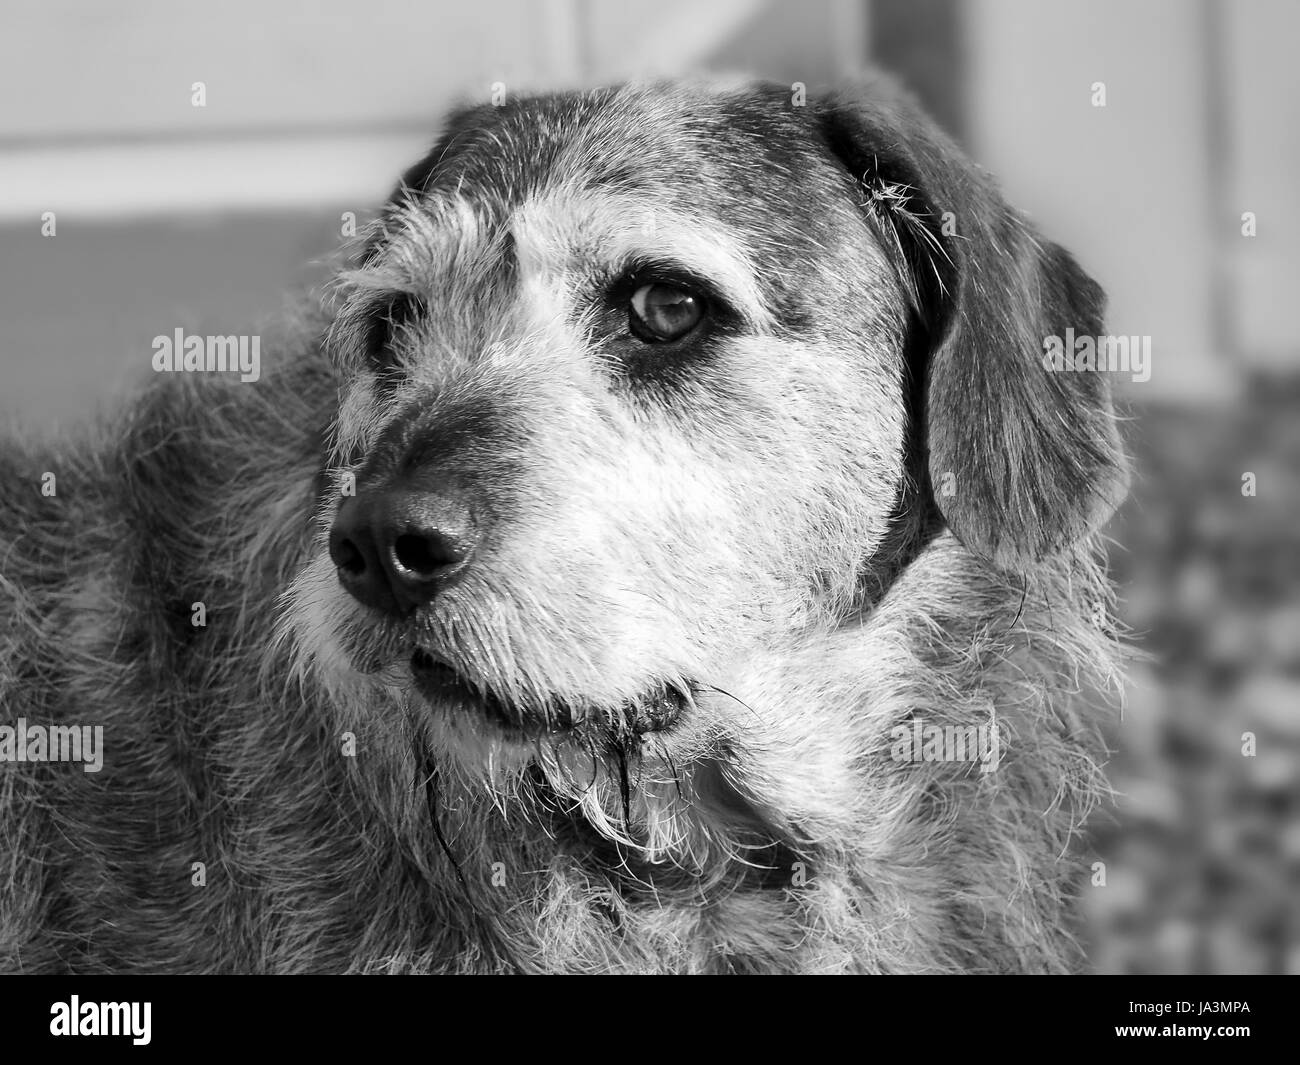 Dog Looking on the Sly - Stock Image